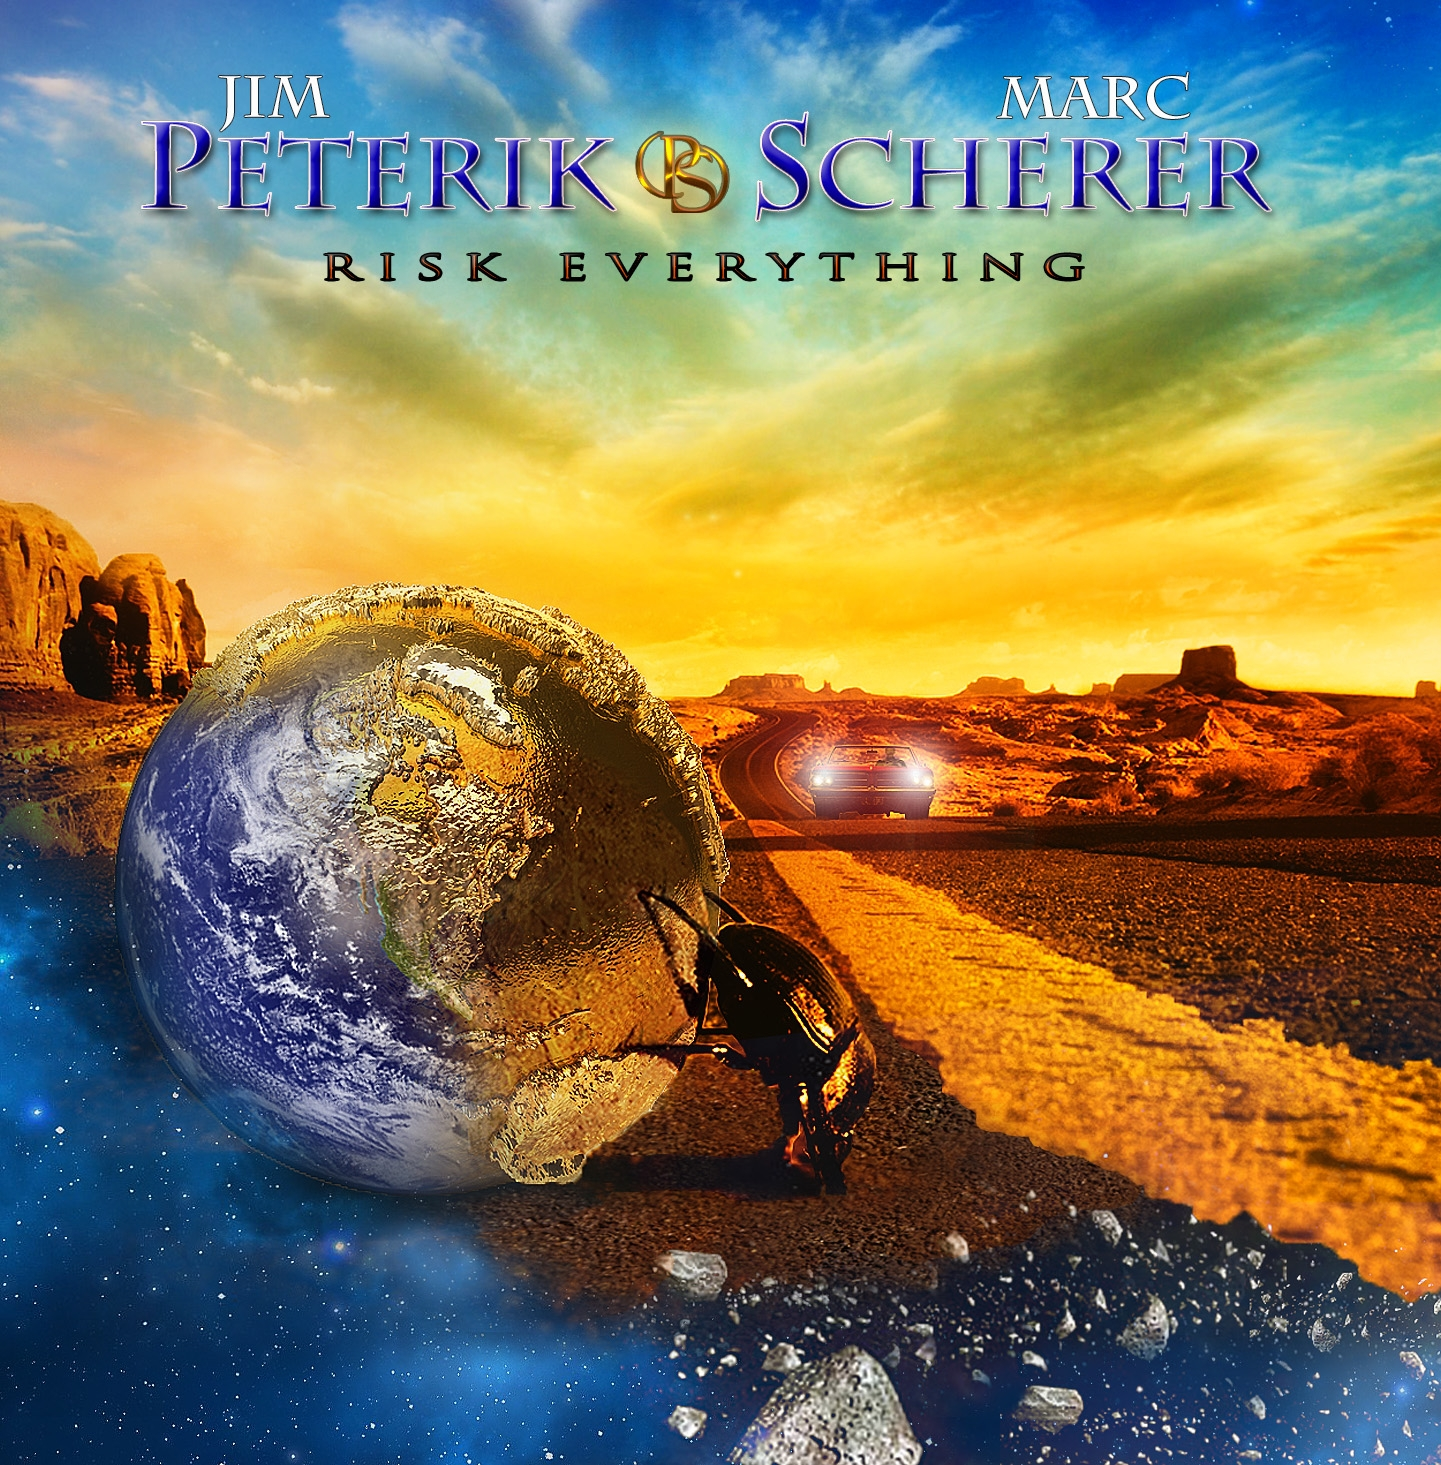 Risk Everything - Artwork